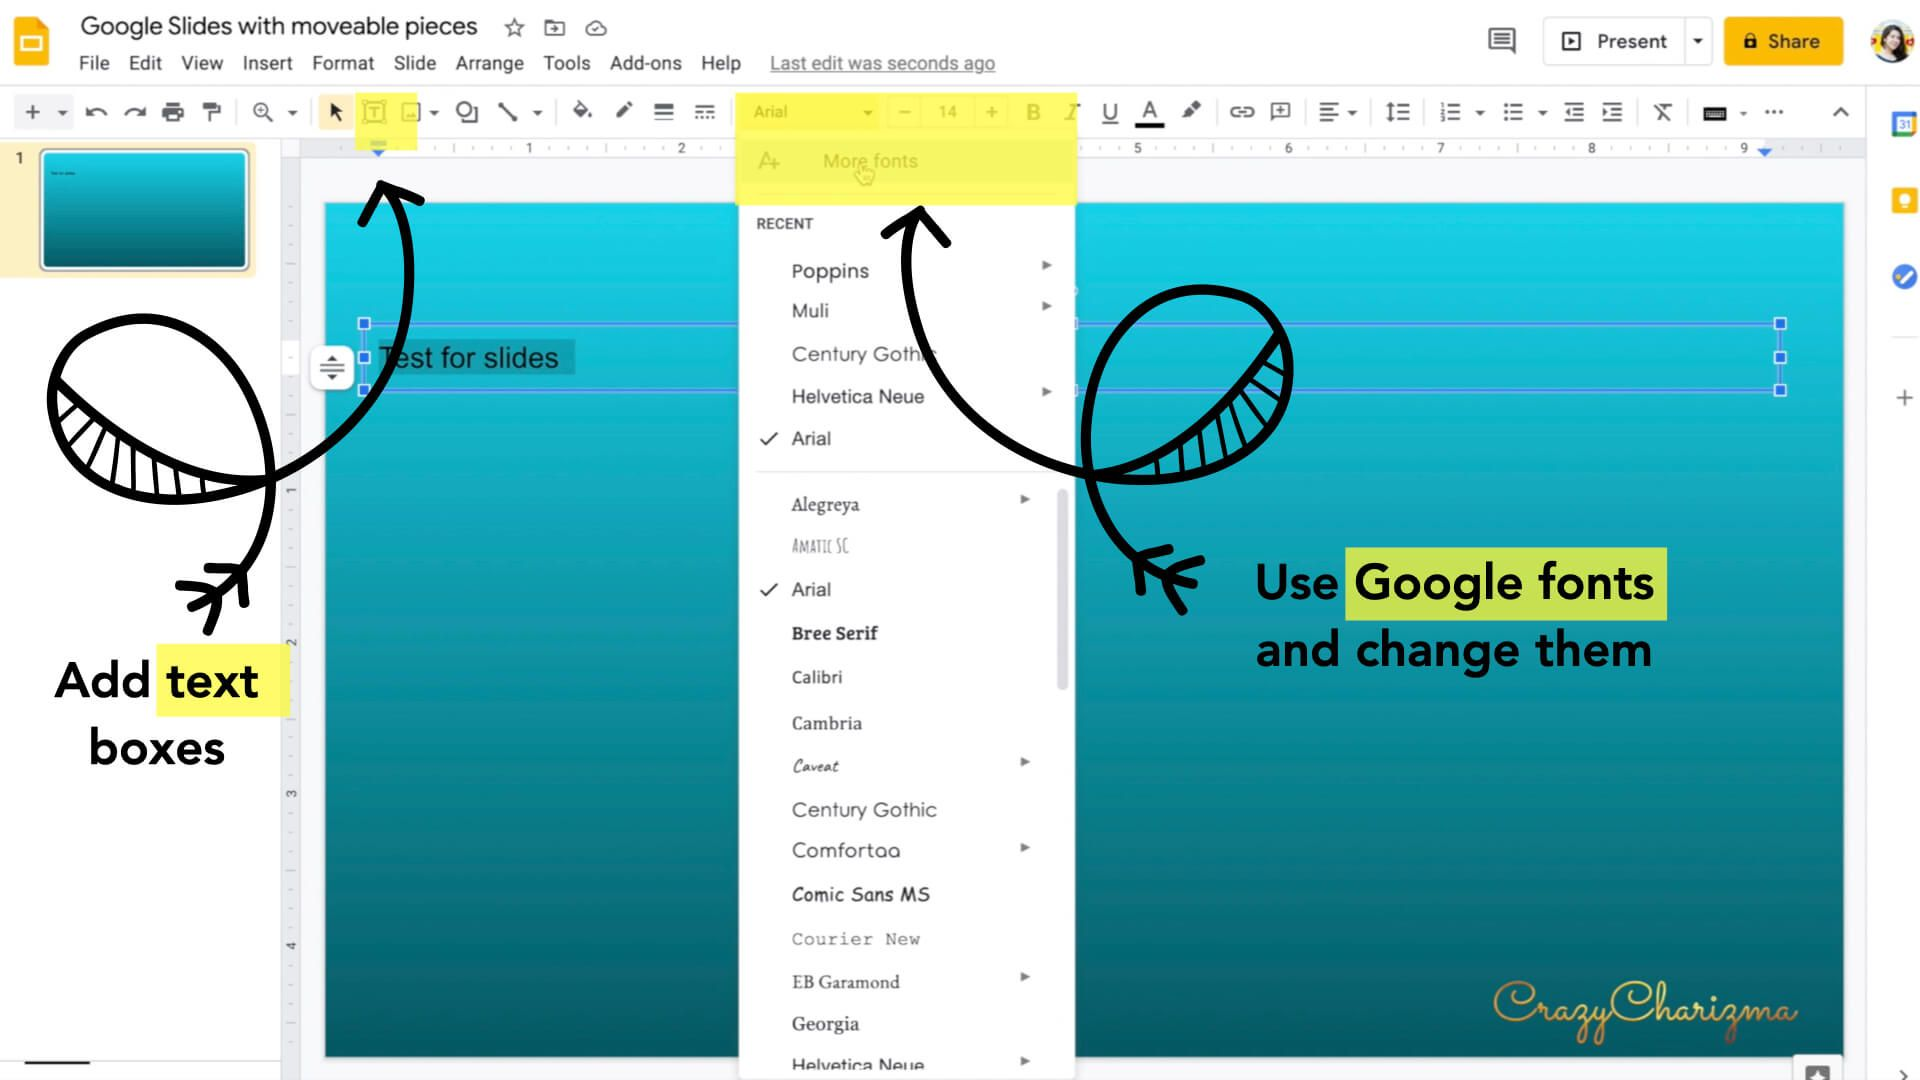 Add text boxes and use Google fonts